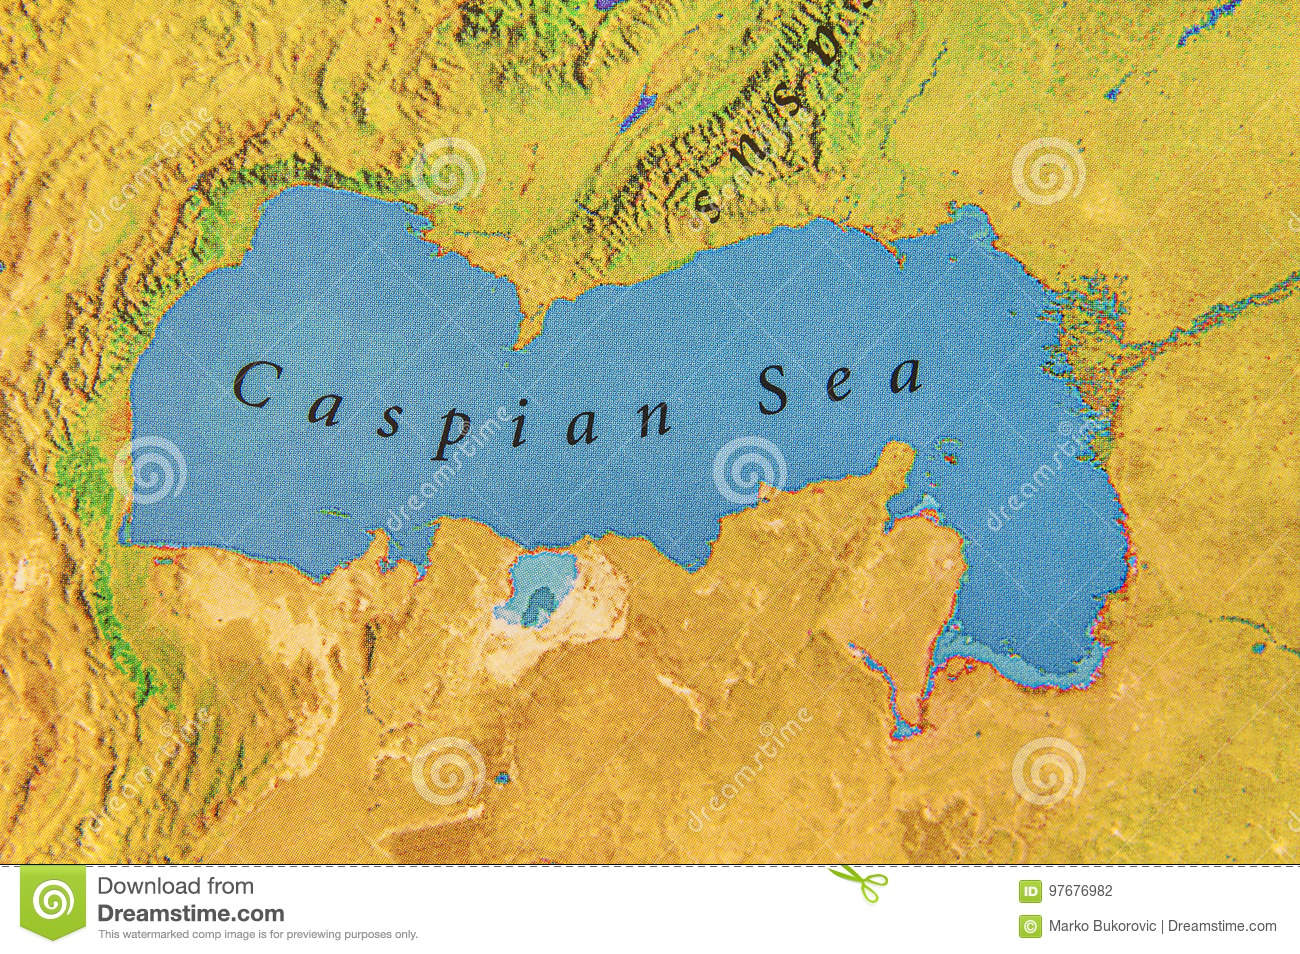 Geographic Map Of Midle East Caspian Sea Stock Photo - Image ...